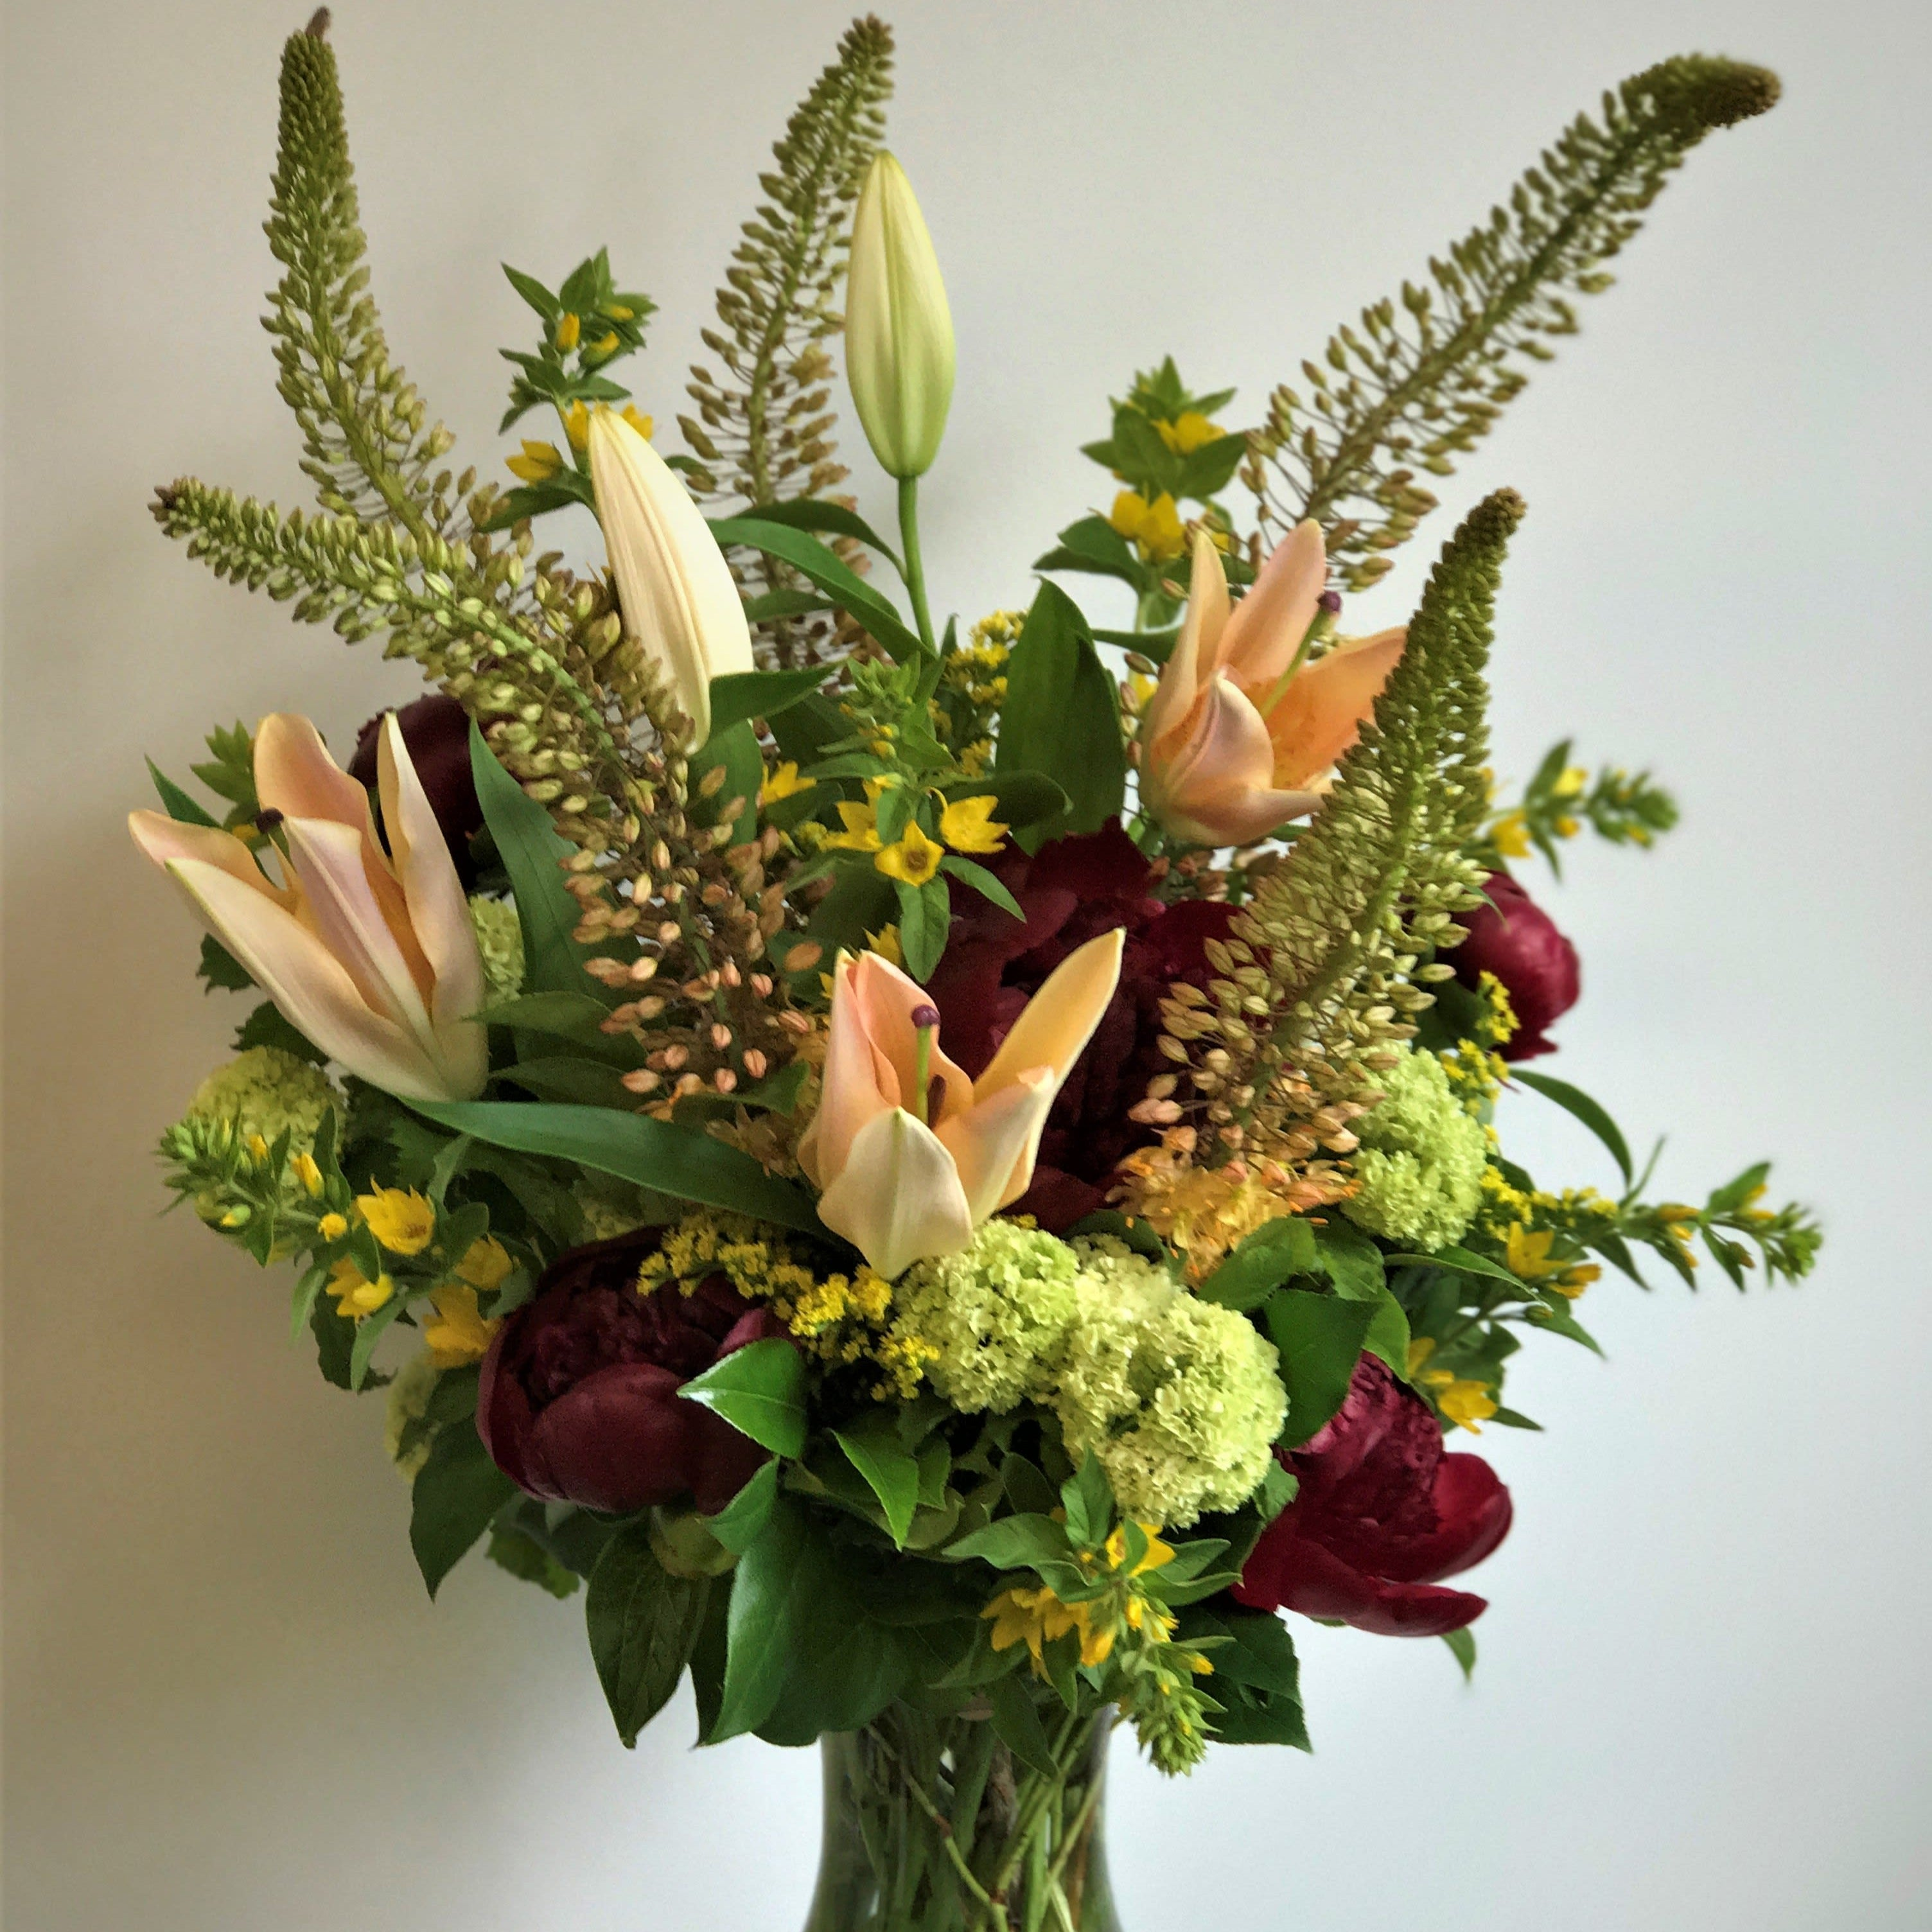 Designer's Choice - Tall - Daily floral delivery from Botanica Floral Design